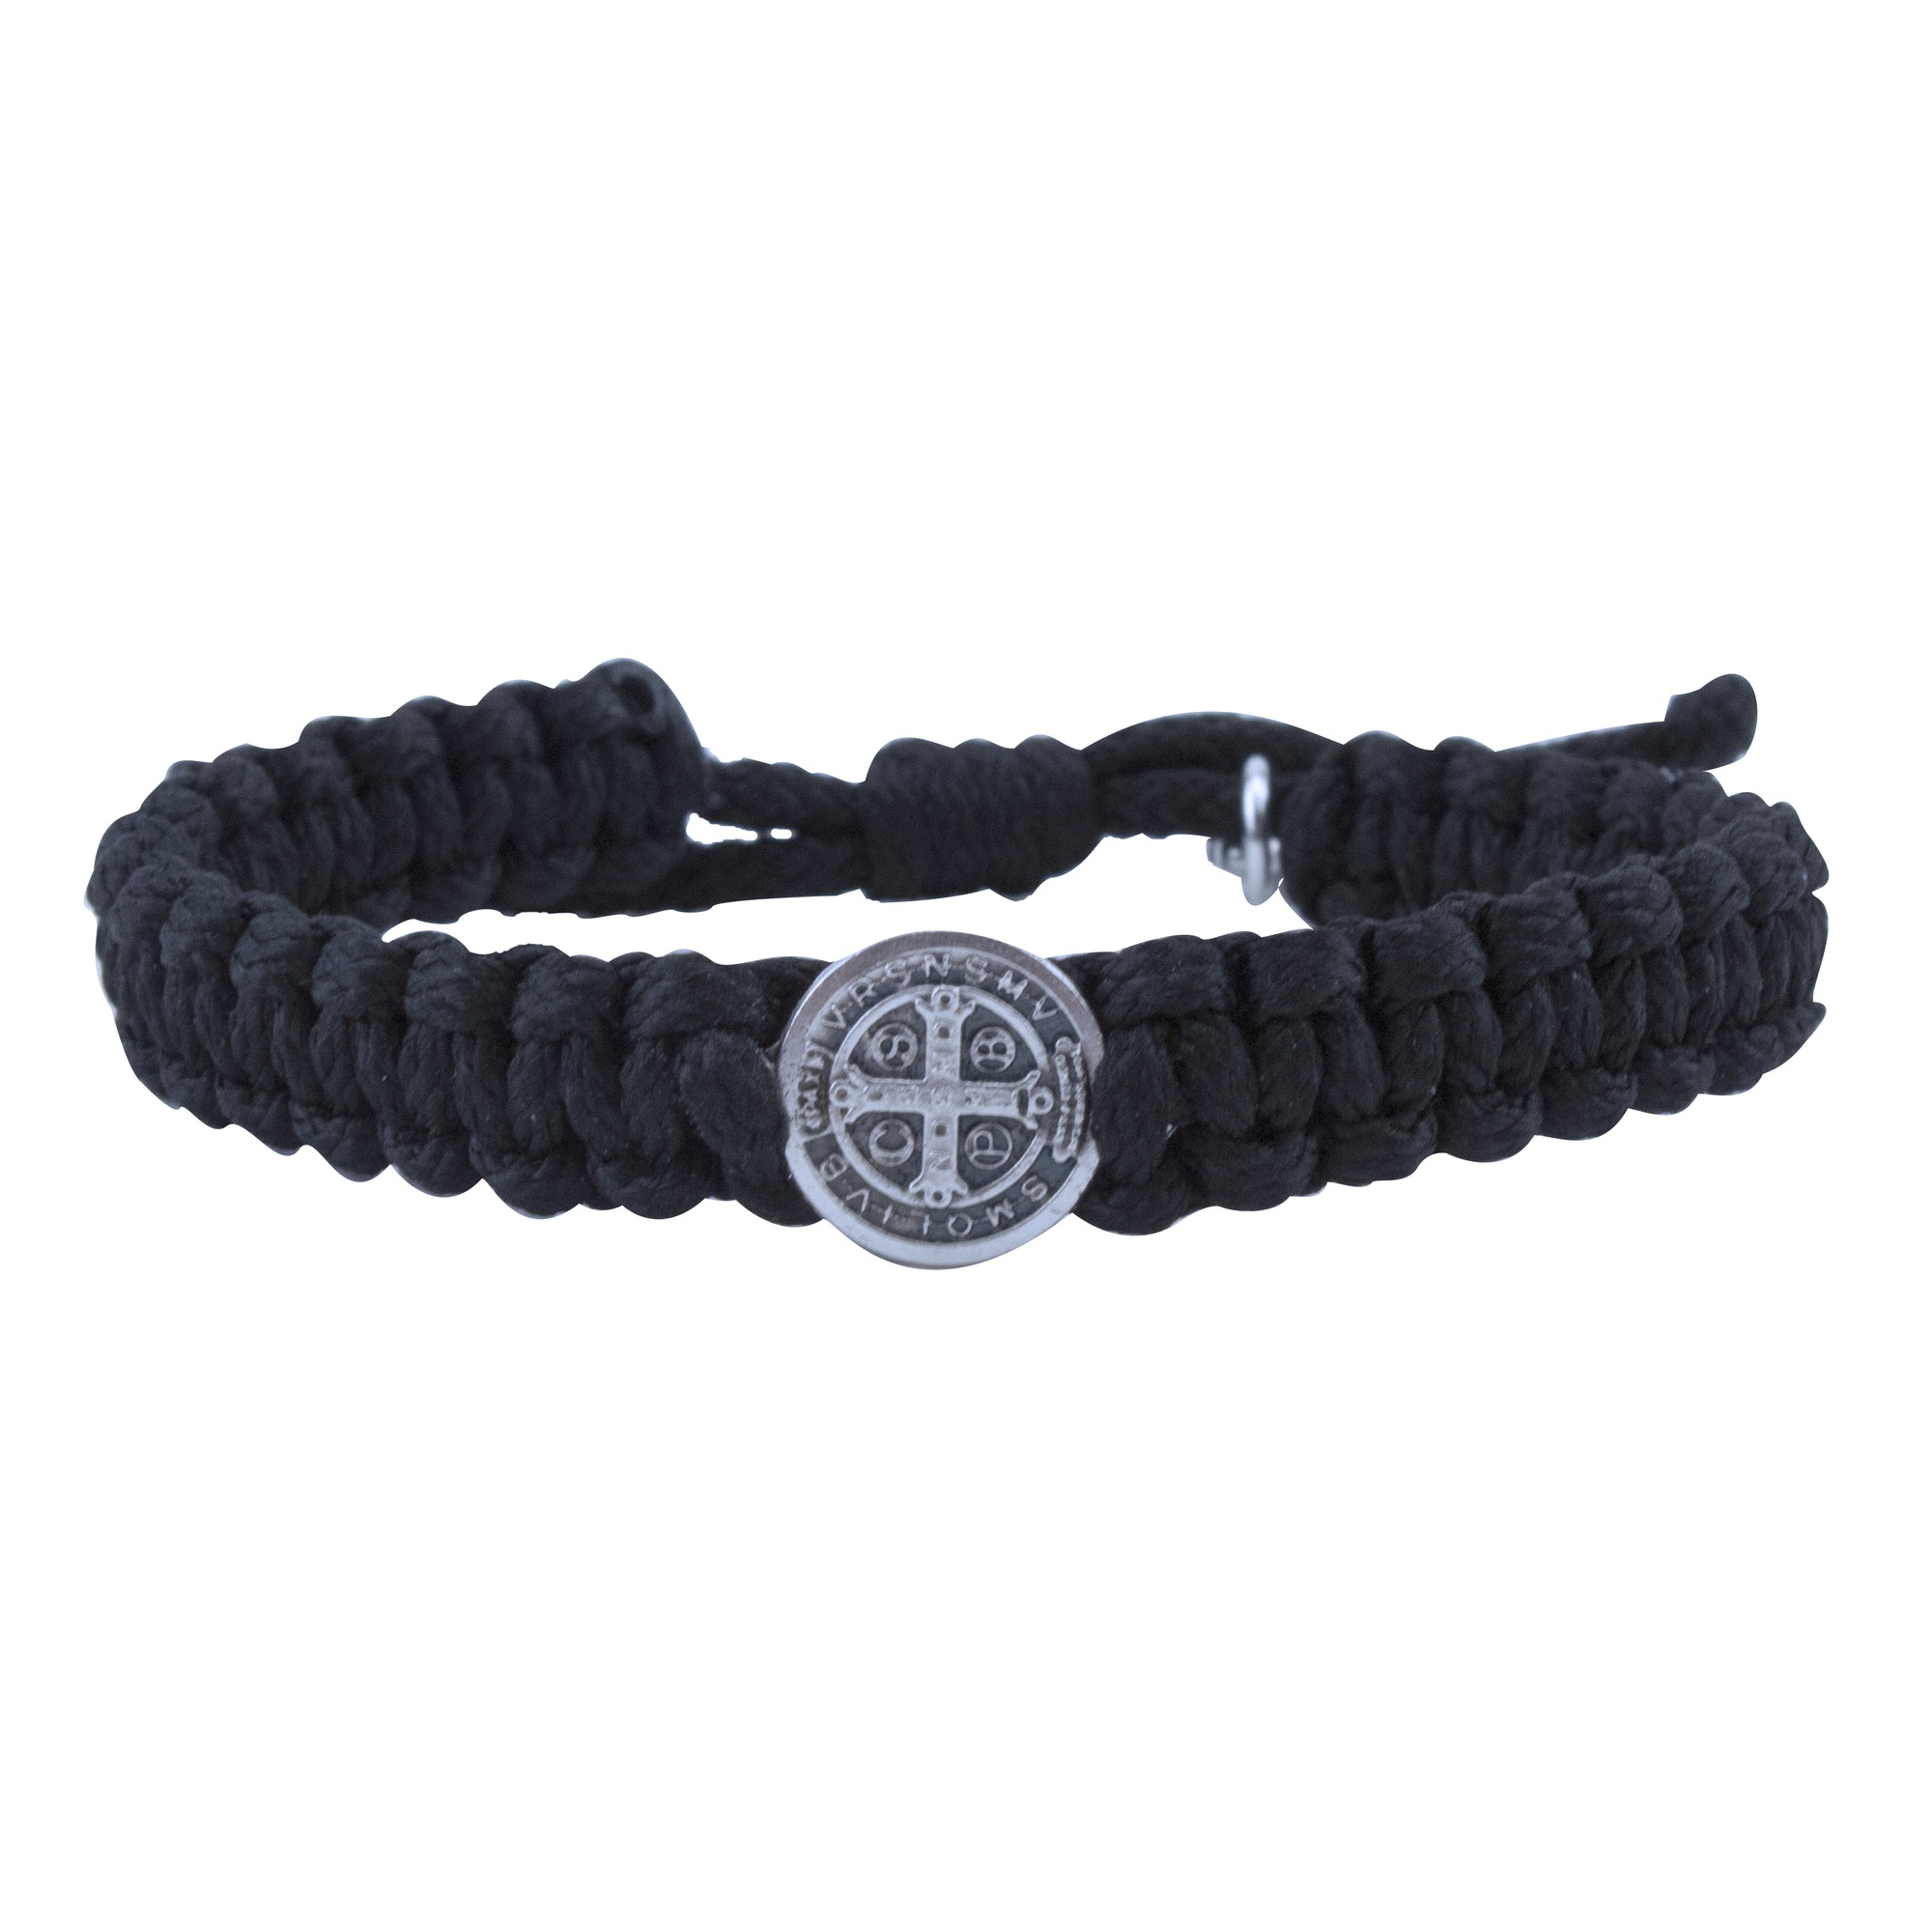 products jewellery jewelry sterling turquoise s store vintage ring silver navajo the mens men